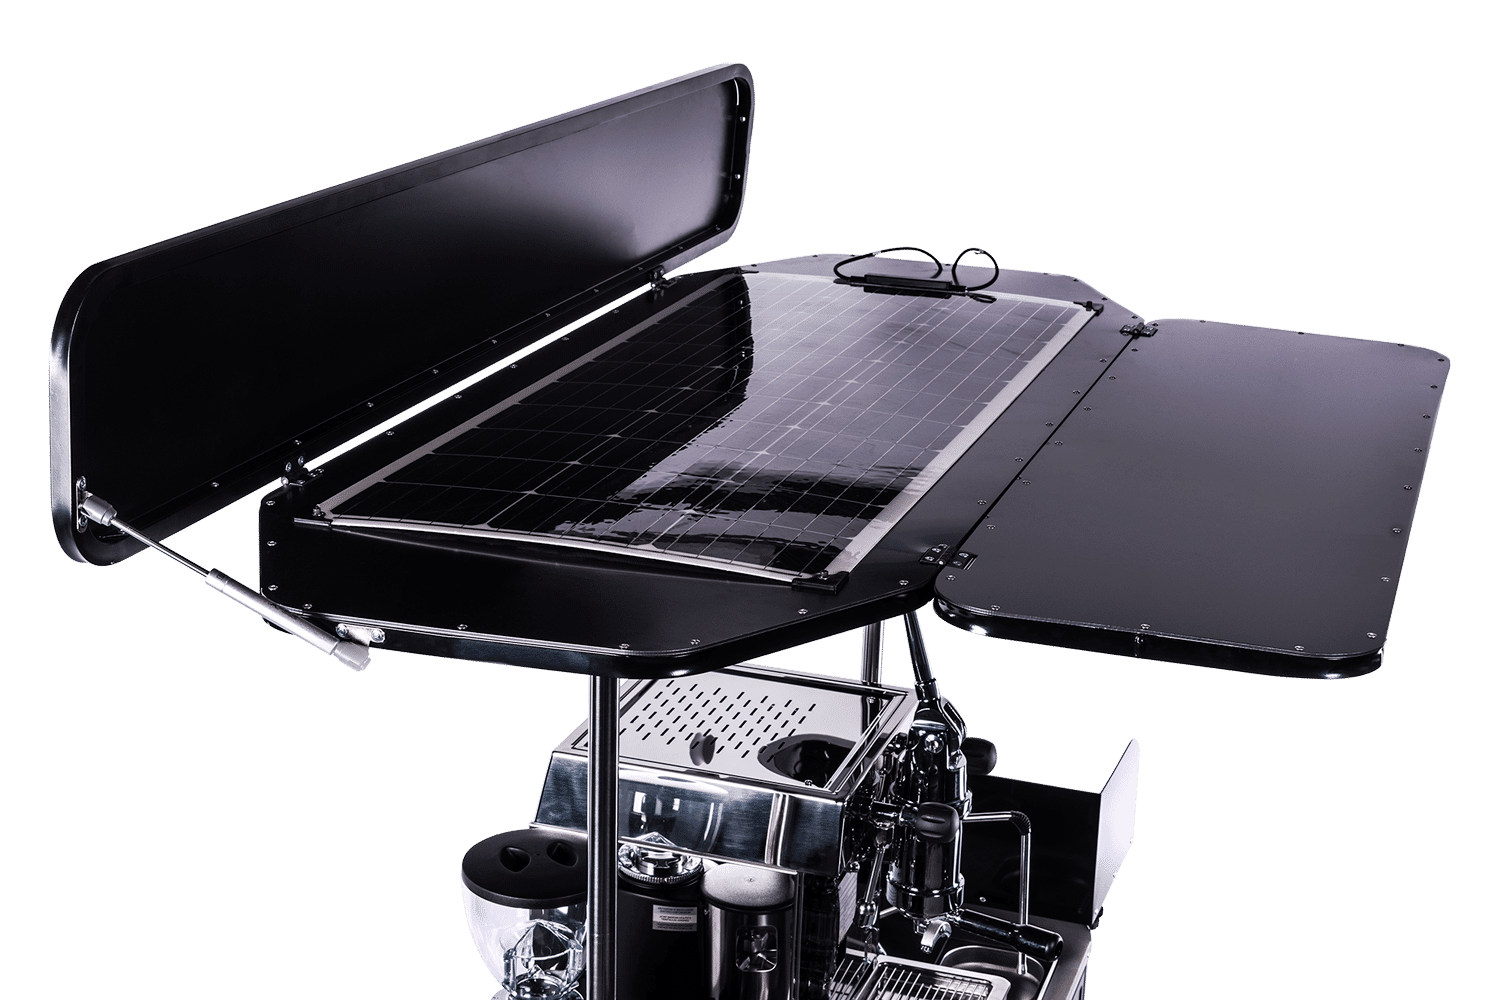 Solar panel kit for food carts by BizzOnWheels